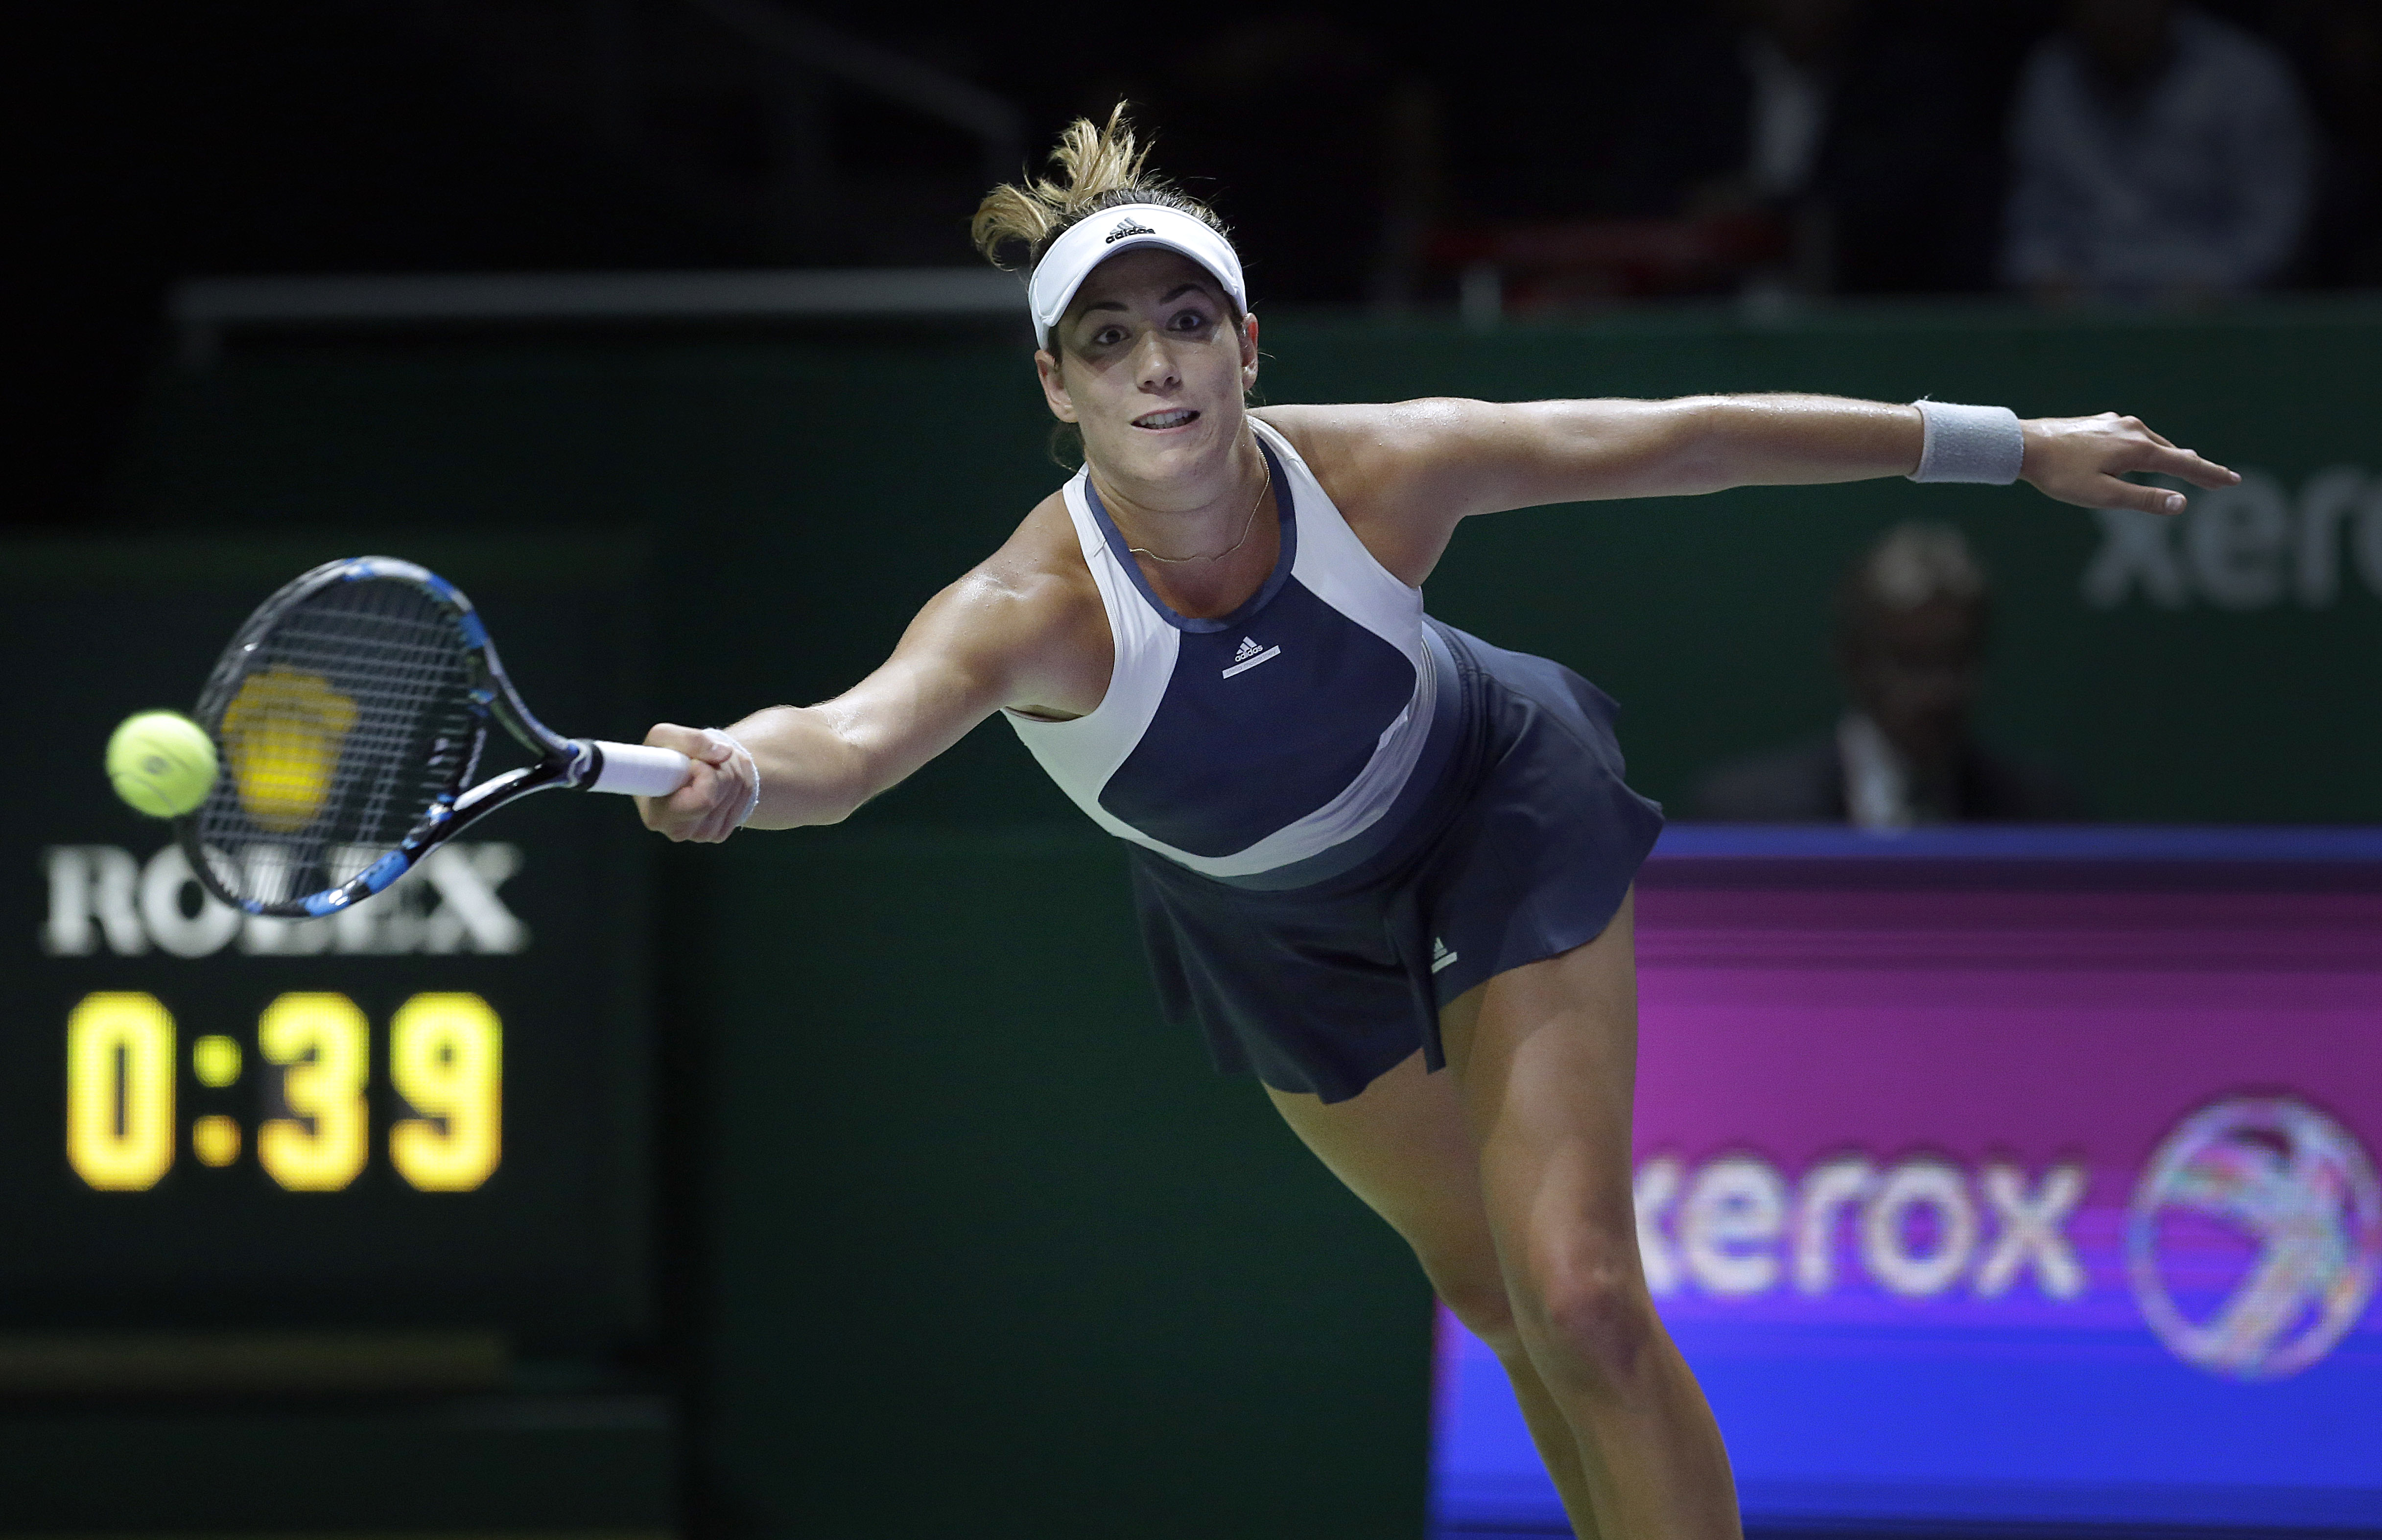 Garbine Muguruza of Spain makes a forehand return against Lucie Safarova of the Czech Republic during their singles match at the WTA tennis finals in Singapore on Monday, Oct. 26, 2015. (AP Photo/Wong Maye-E)